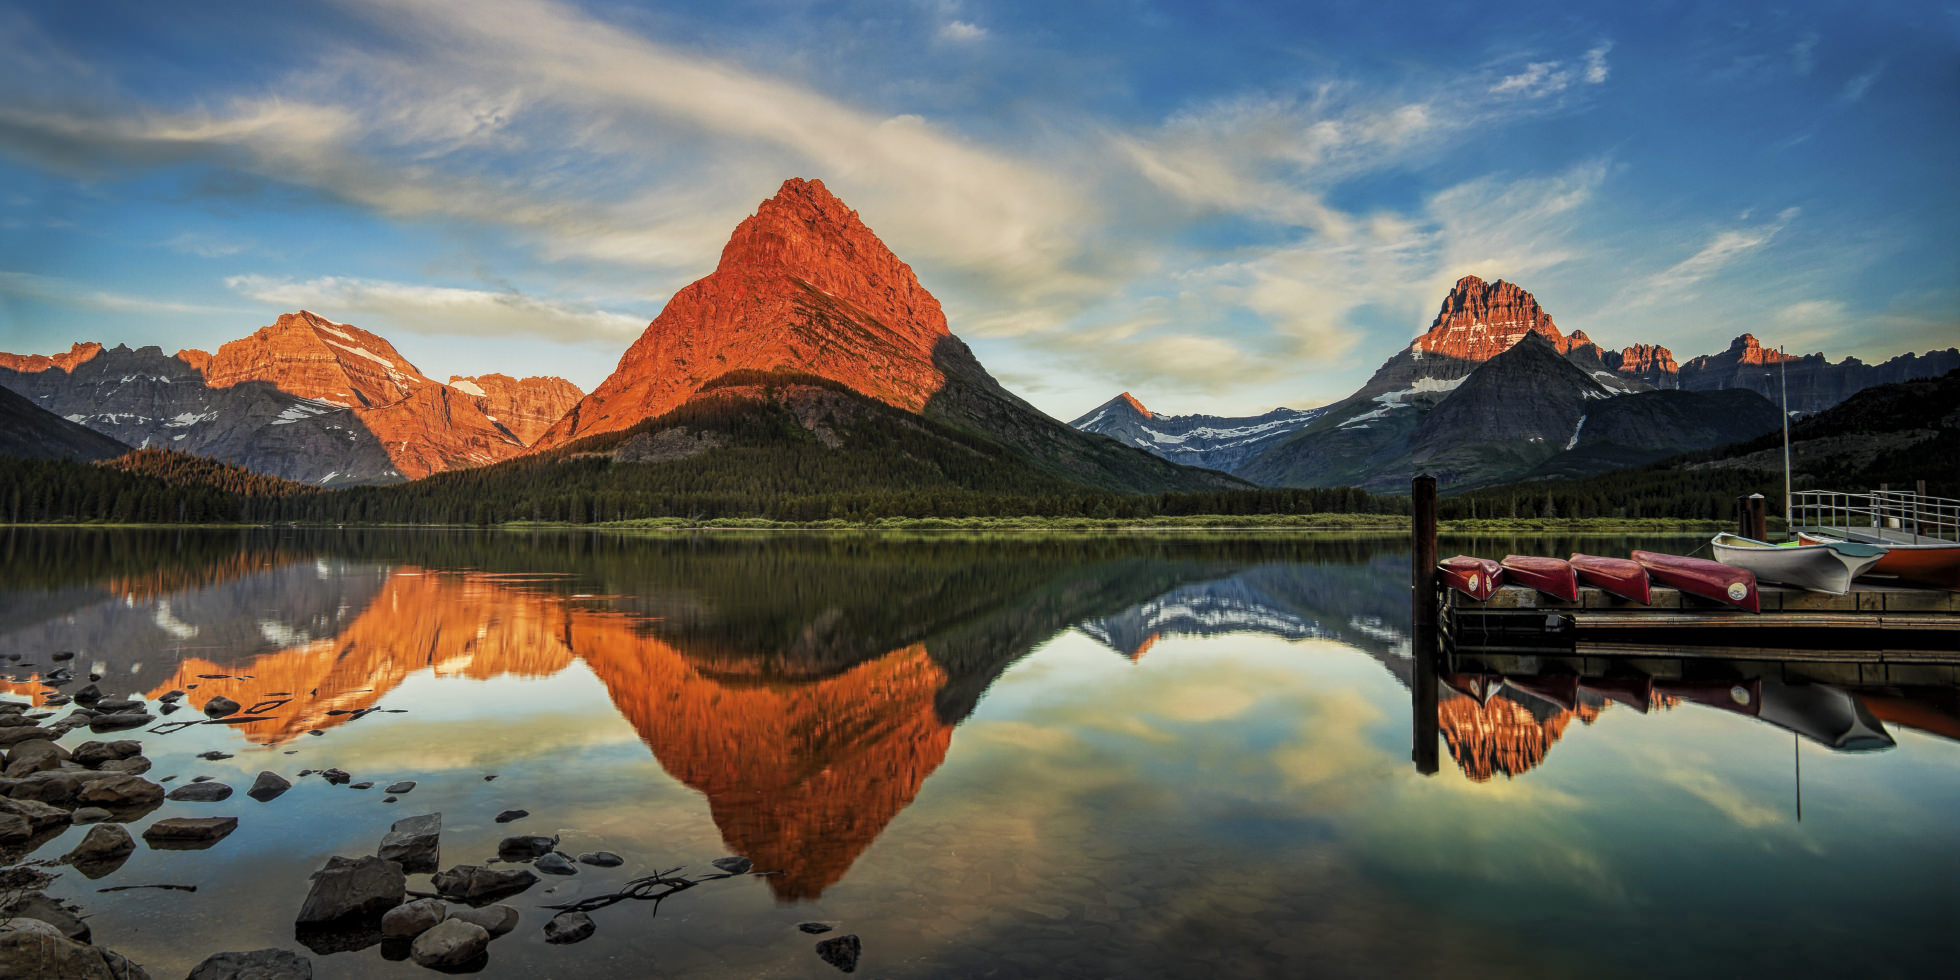 Stalking Sunsets: How to Find the Best Sunset Photography Locations